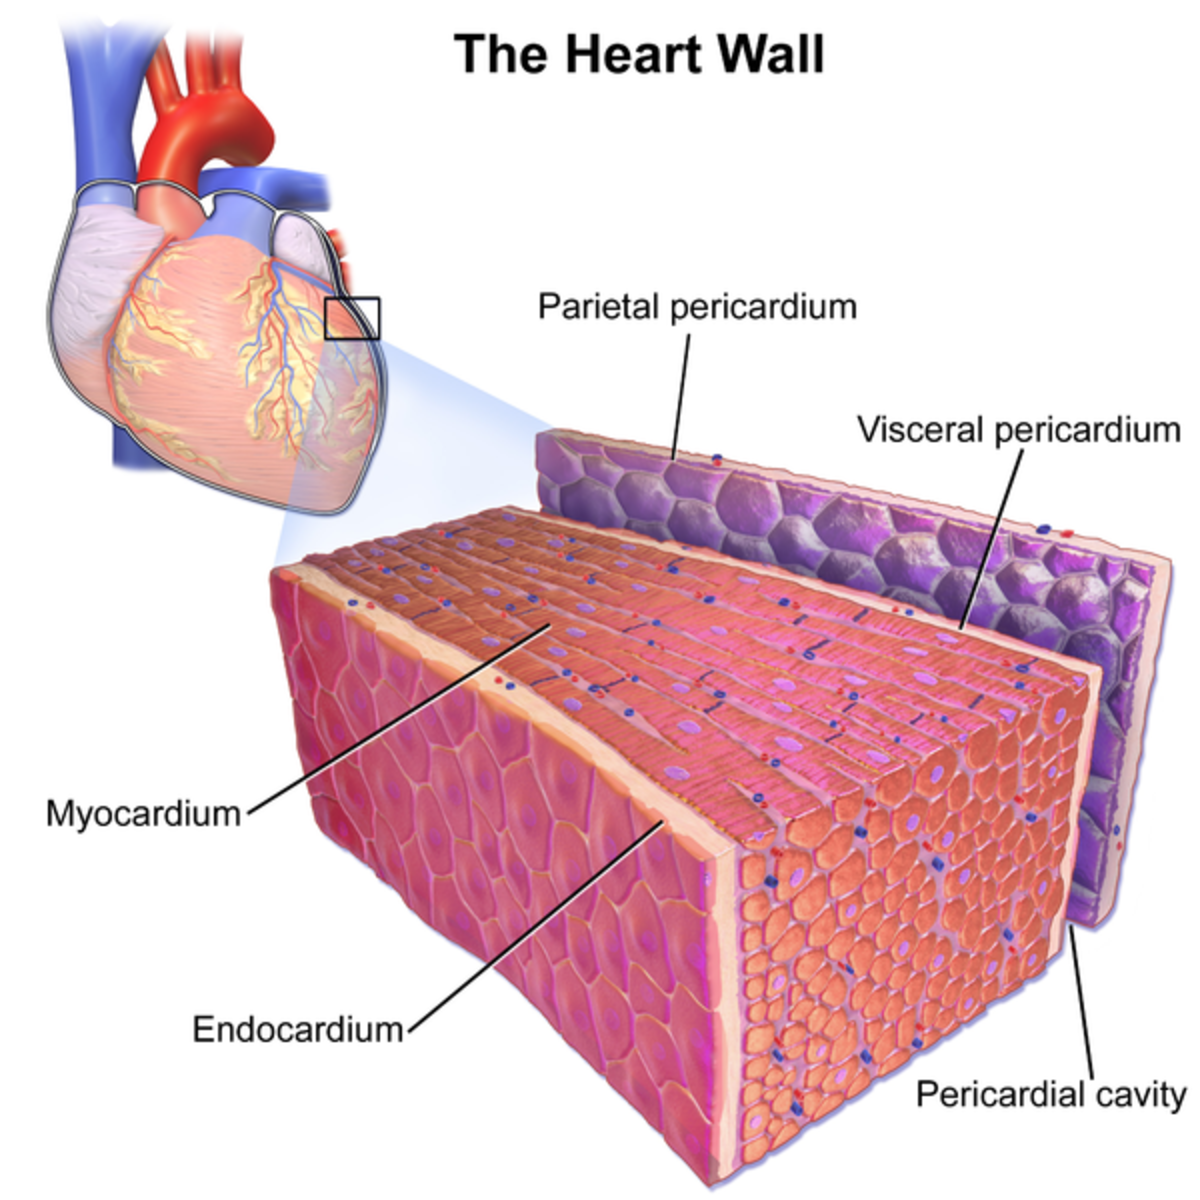 The layers of the heart wall